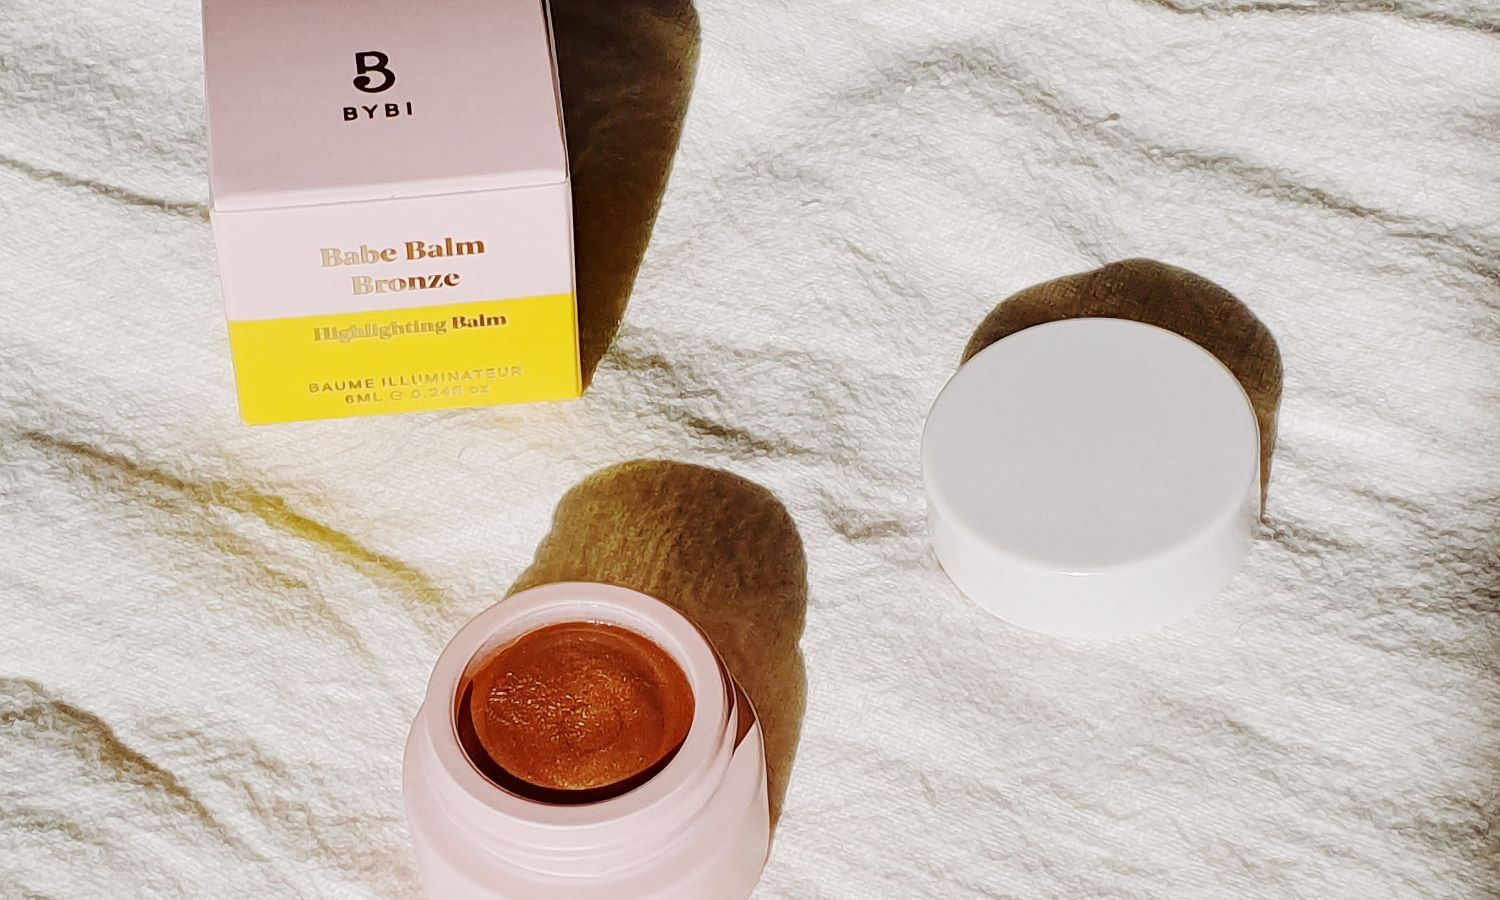 Reviewing Bybi's Babe Balm Bronze